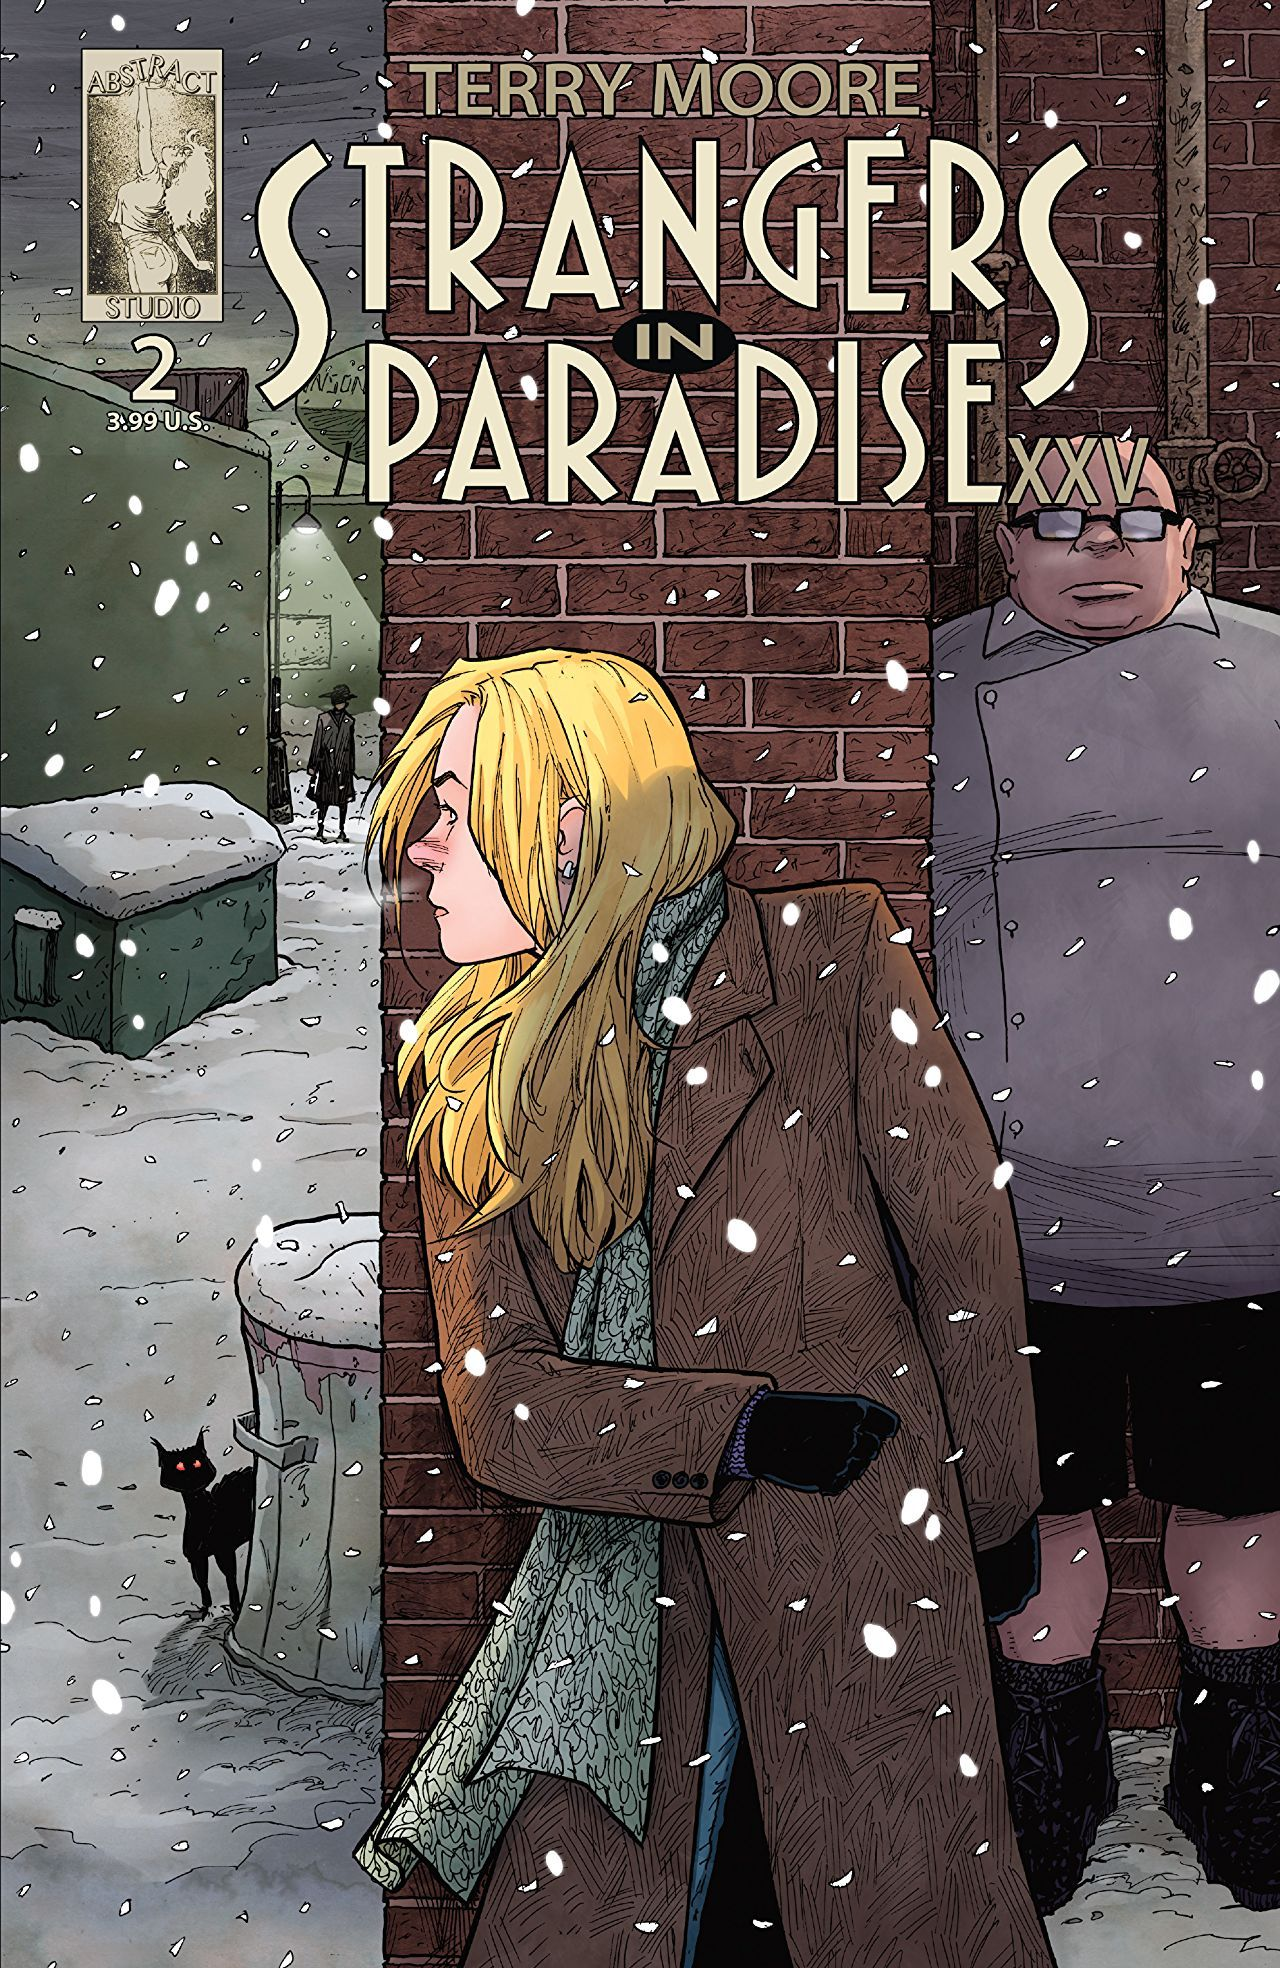 Strangers In Paradise Xxv 2 Comics By Comixology Indie Comic Digital Comic Book Art